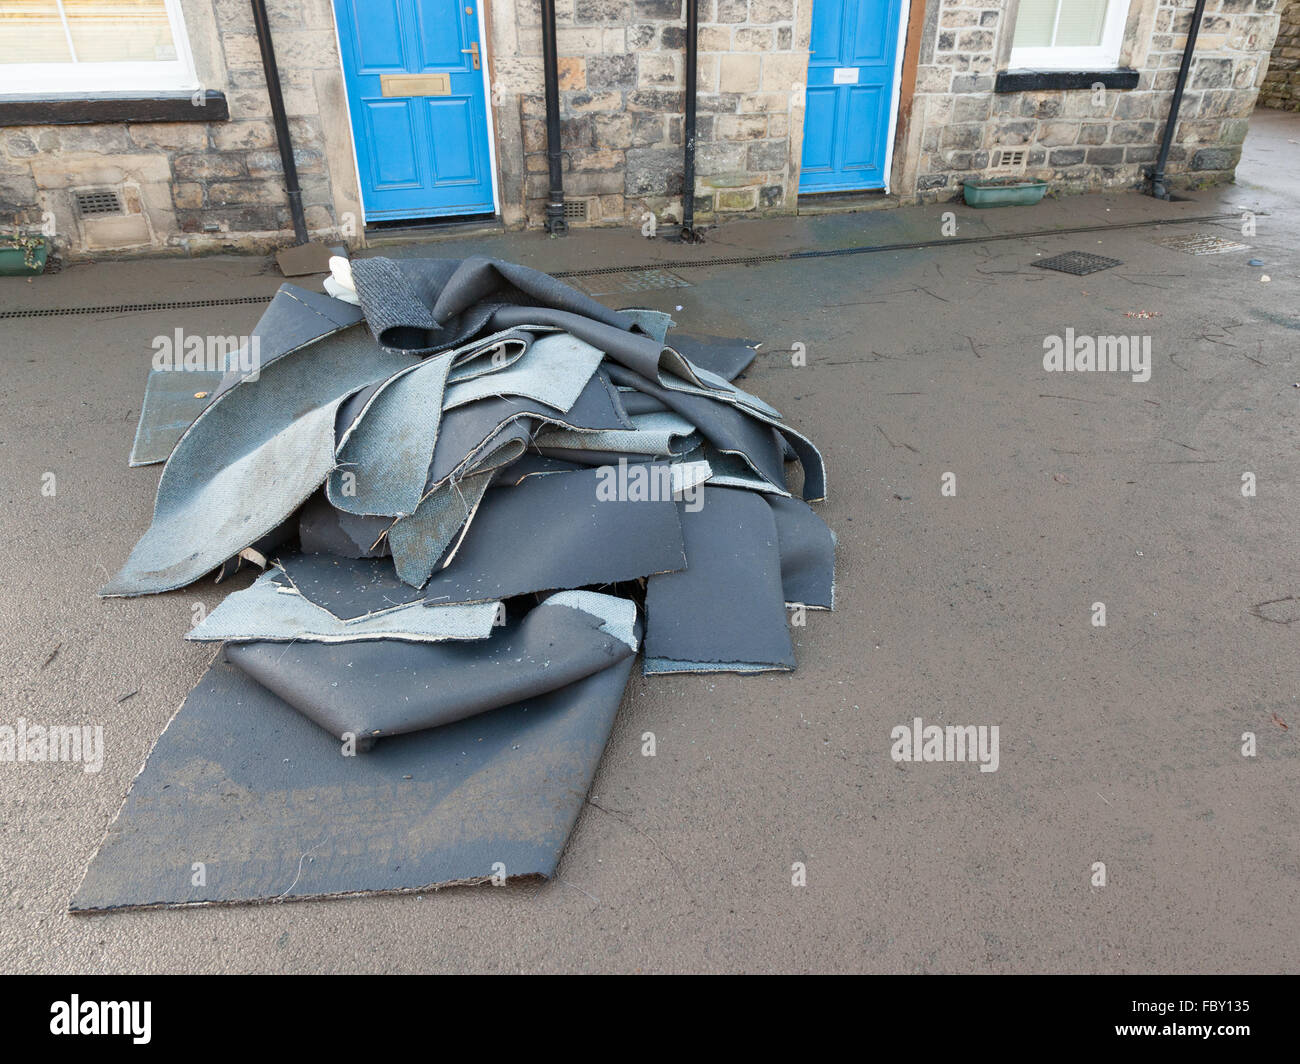 Flood damage in Bingley, England. Stock Photo